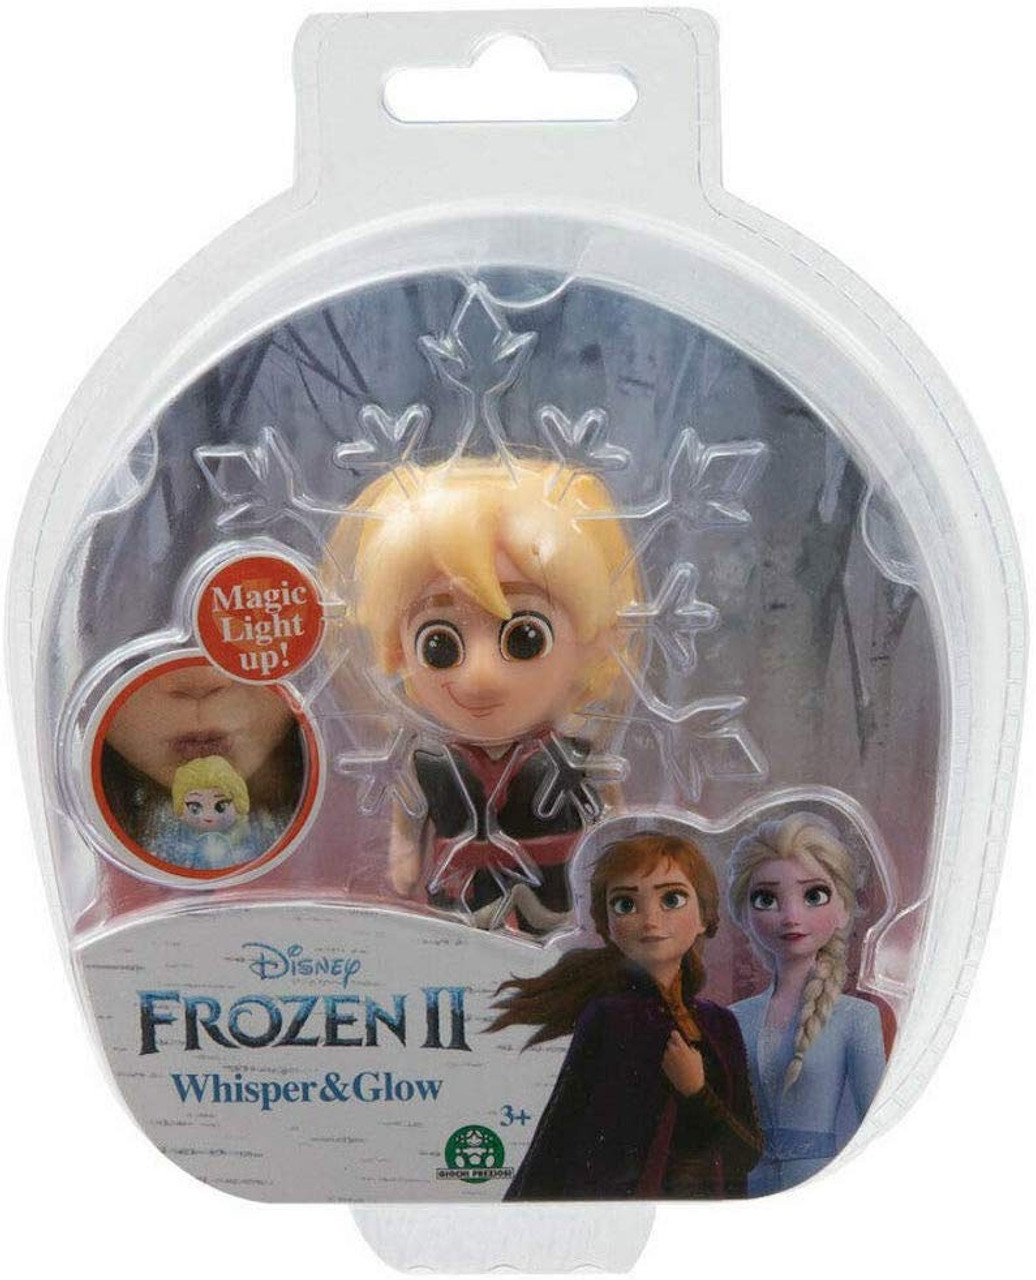 who plays kristoff in frozen 2